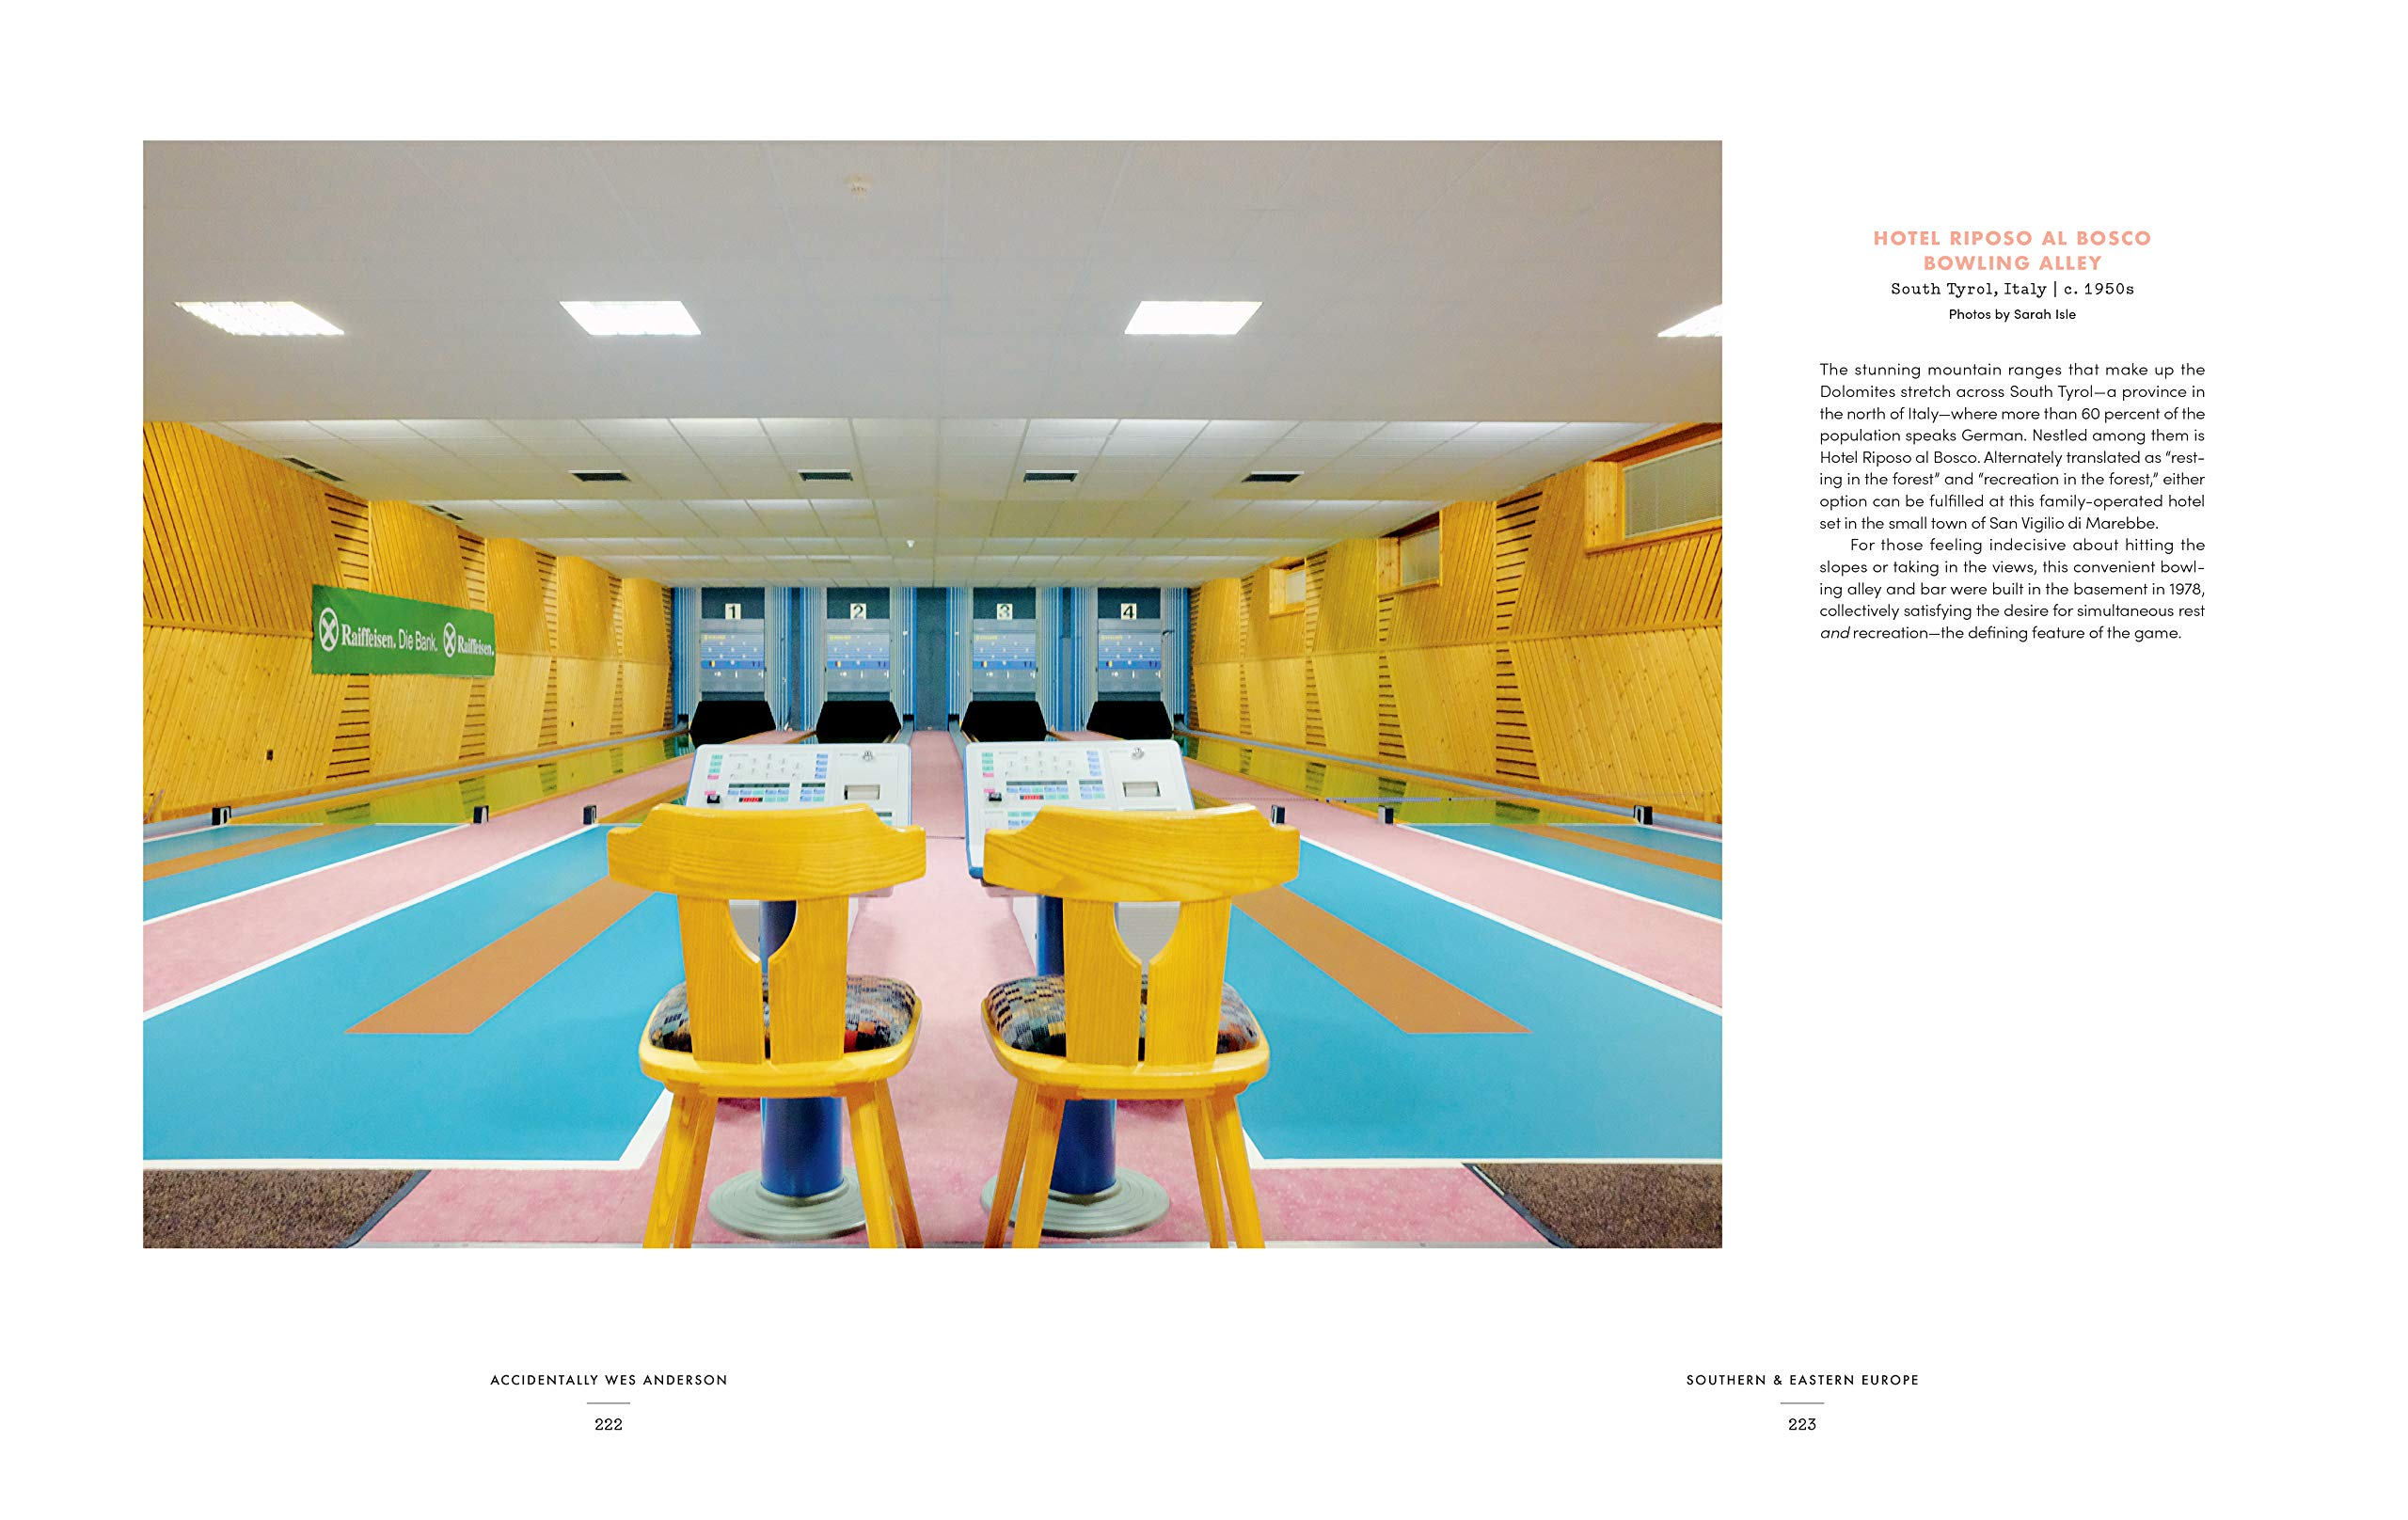 A book page from Accidentally Wes Anderson, showing a bright pastel coloured image of a bowling alley with a caption top right